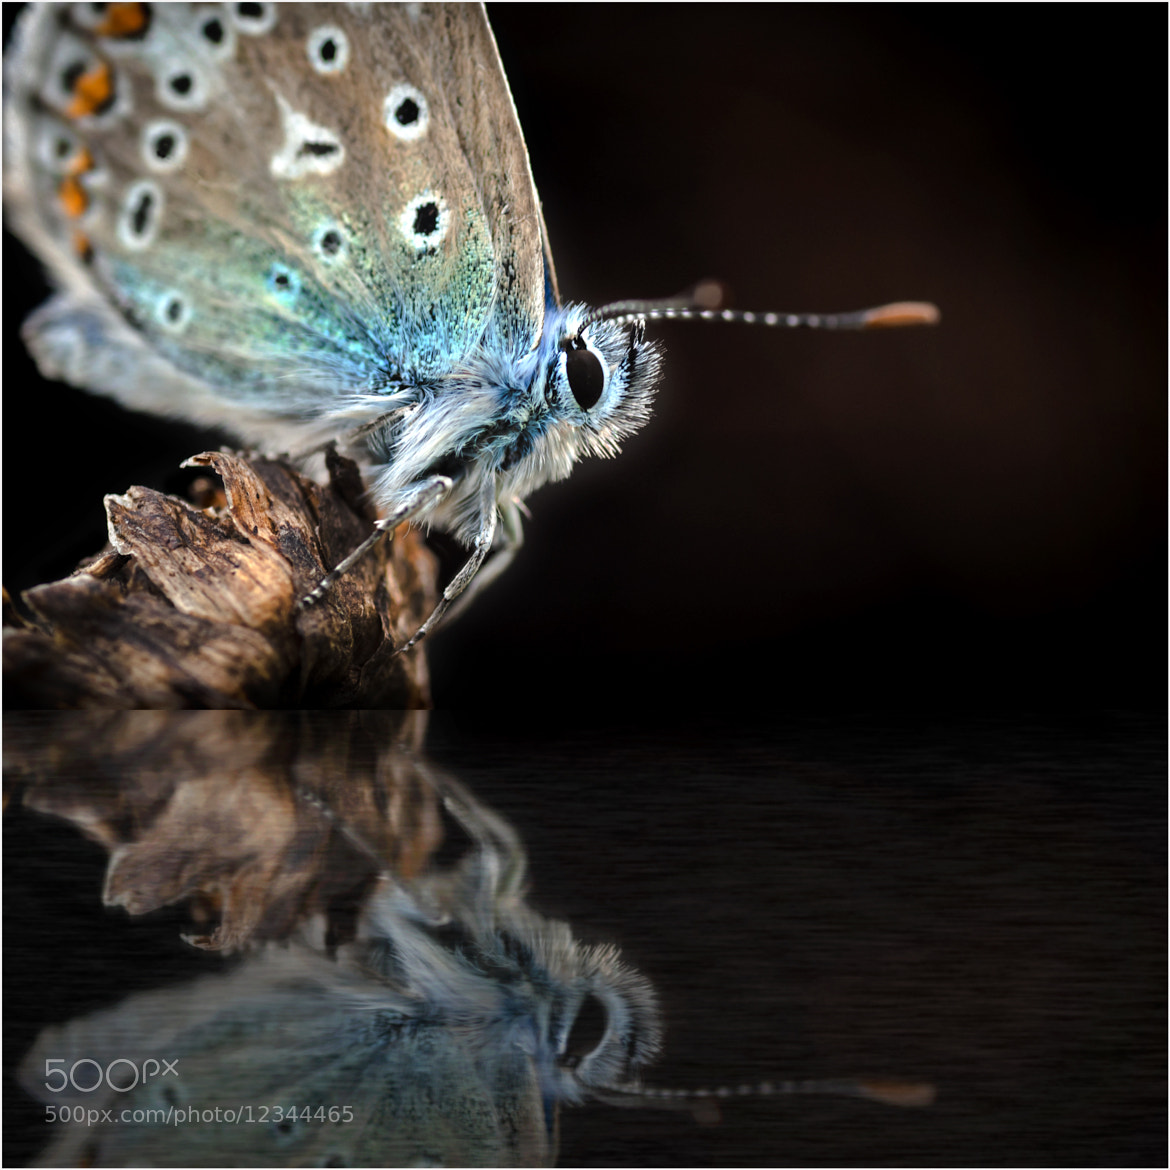 Photograph Common Blue Butterfly by Mark Shoesmith on 500px